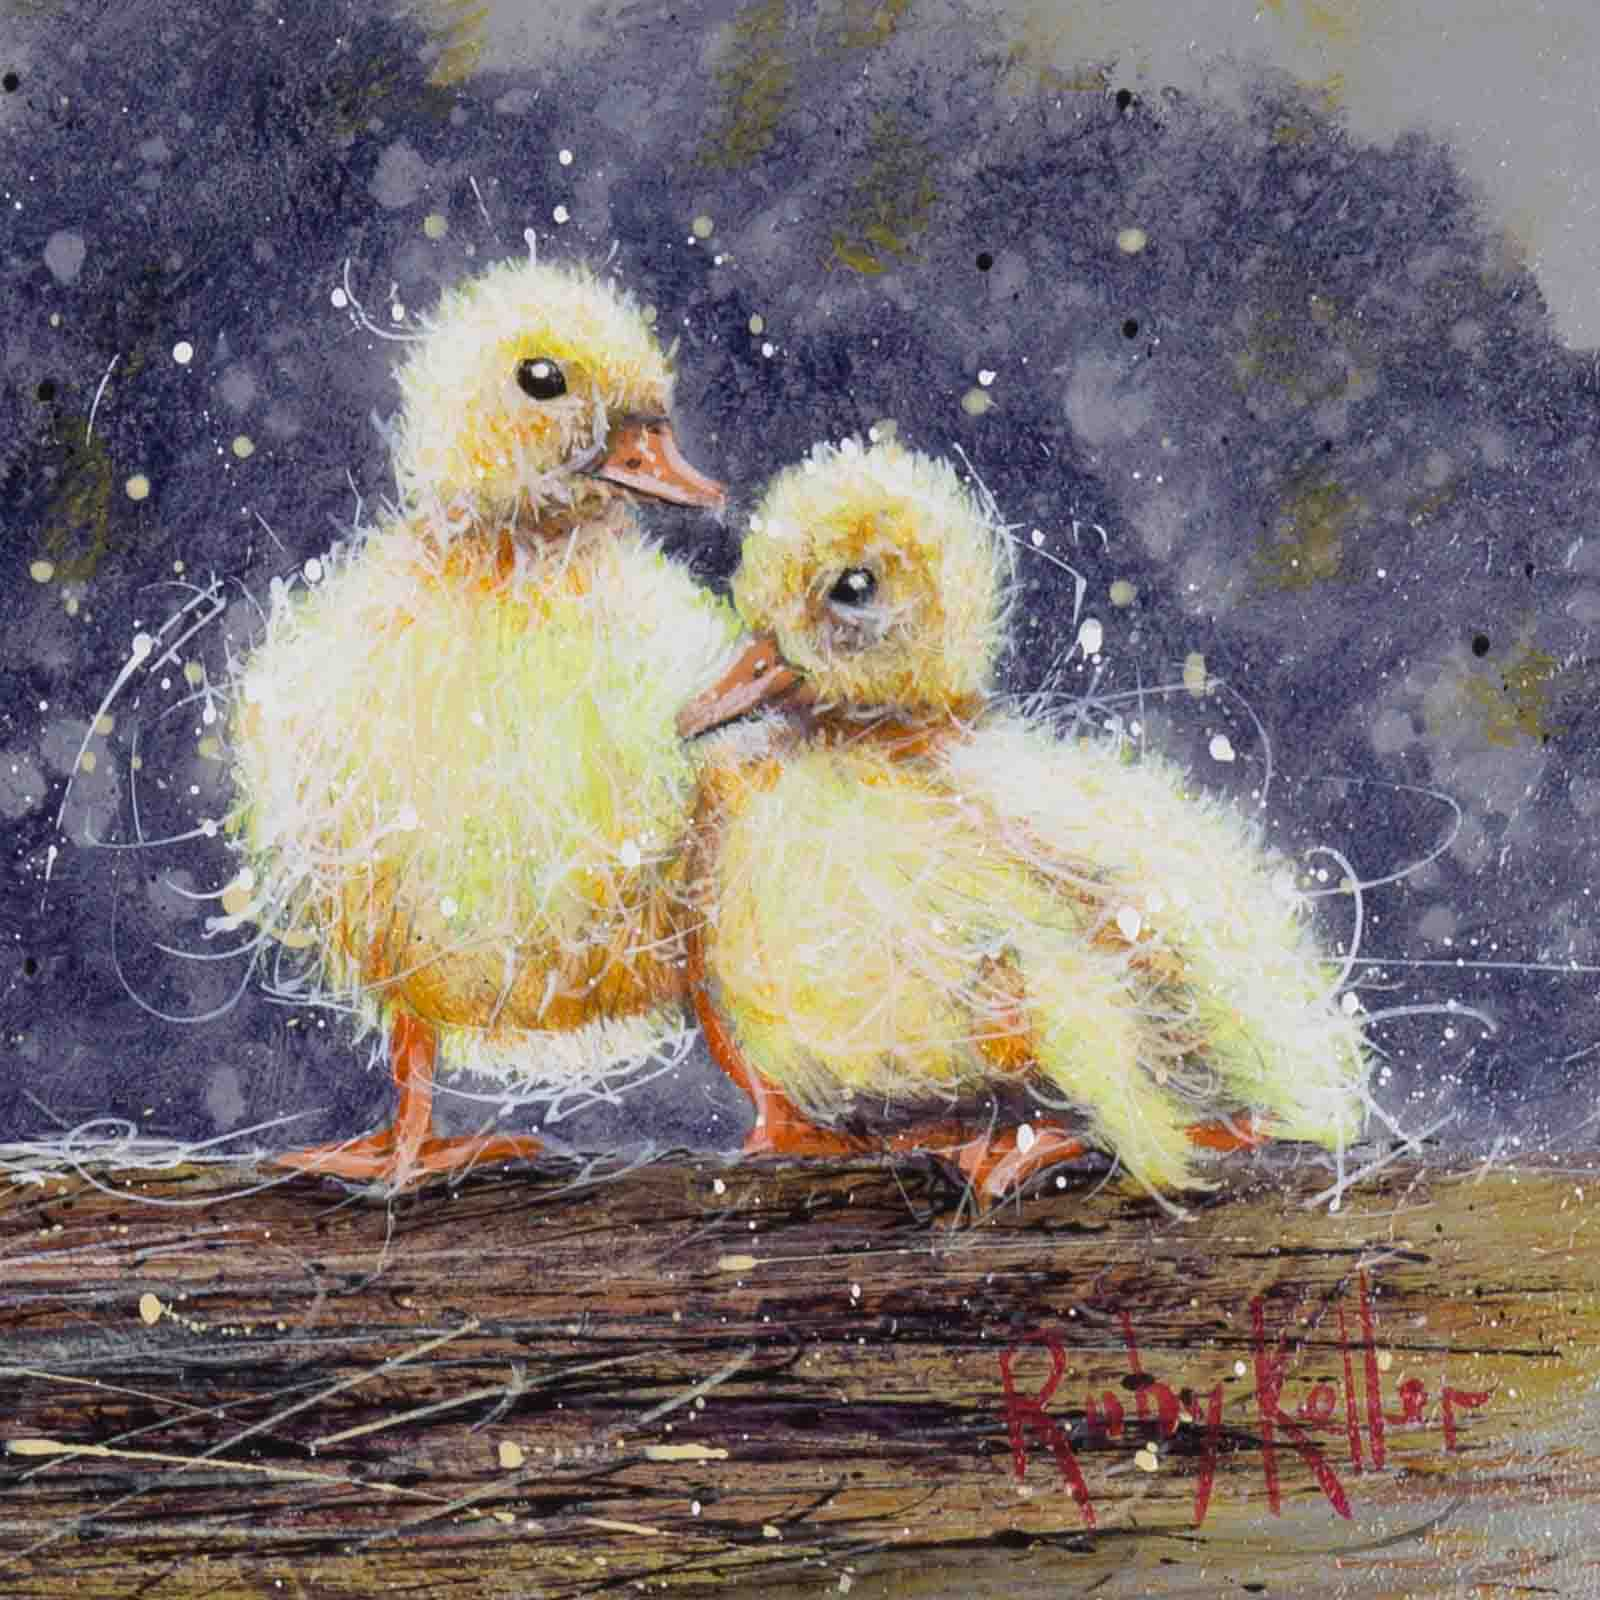 The Ducklings